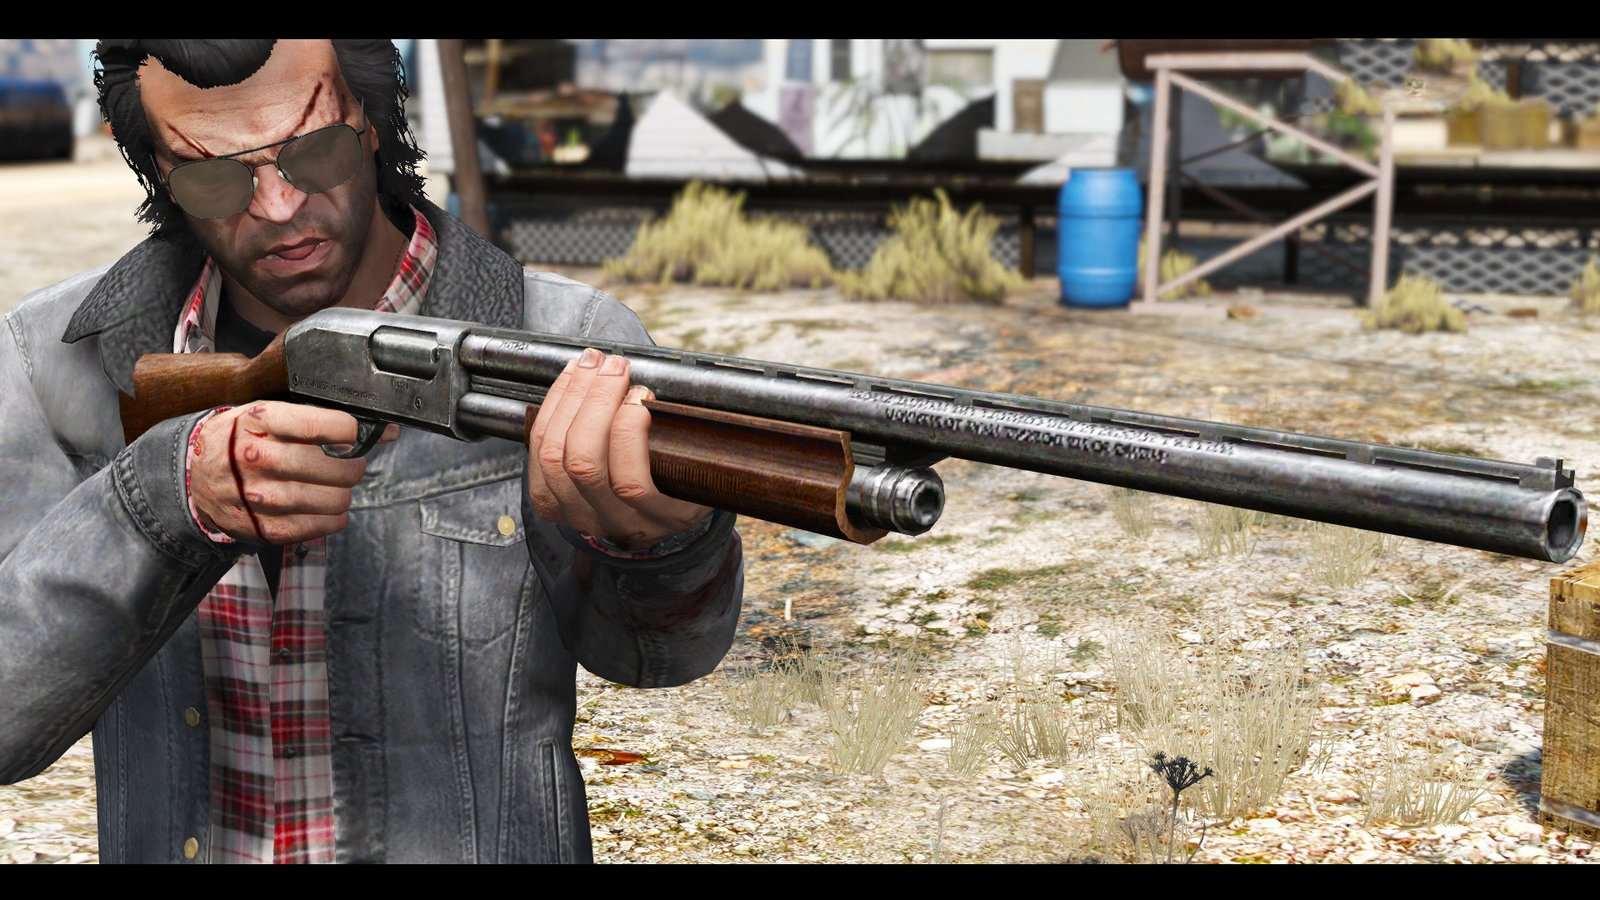 Remington 870e Shotgun [Animé] - GTA5